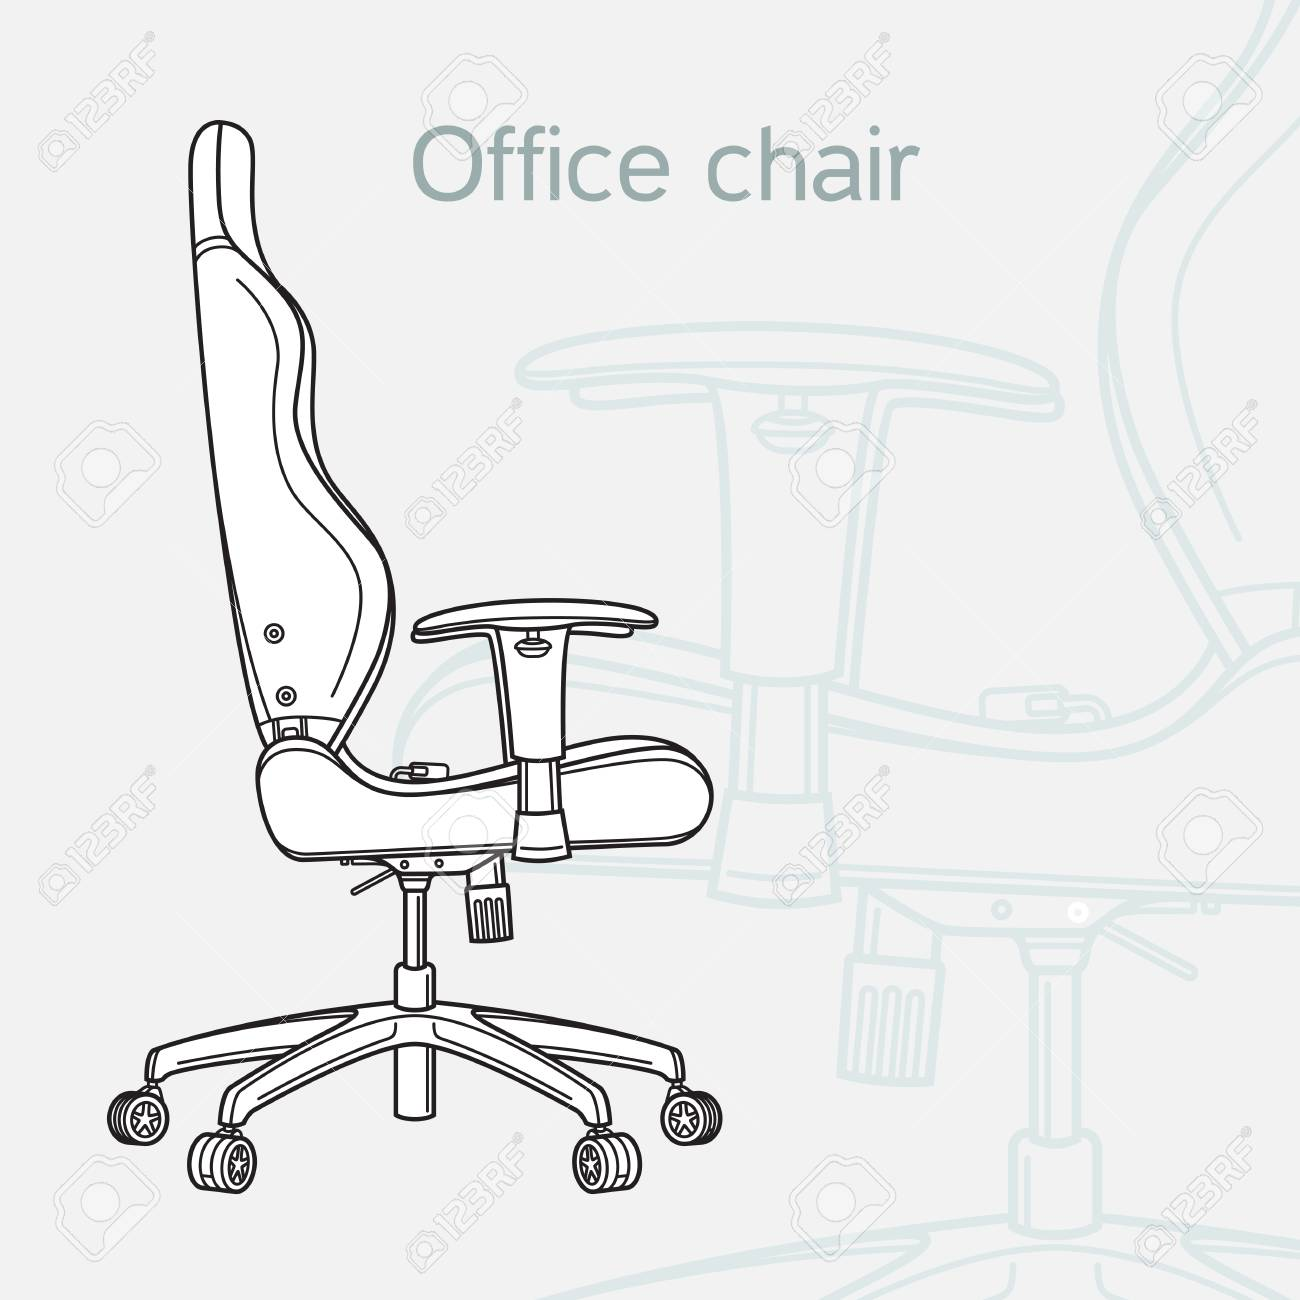 office chair drawing. Unique Chair Office Chair Drawn In A Schematic Style Line Art Stock Vector  99862708 To Chair Drawing